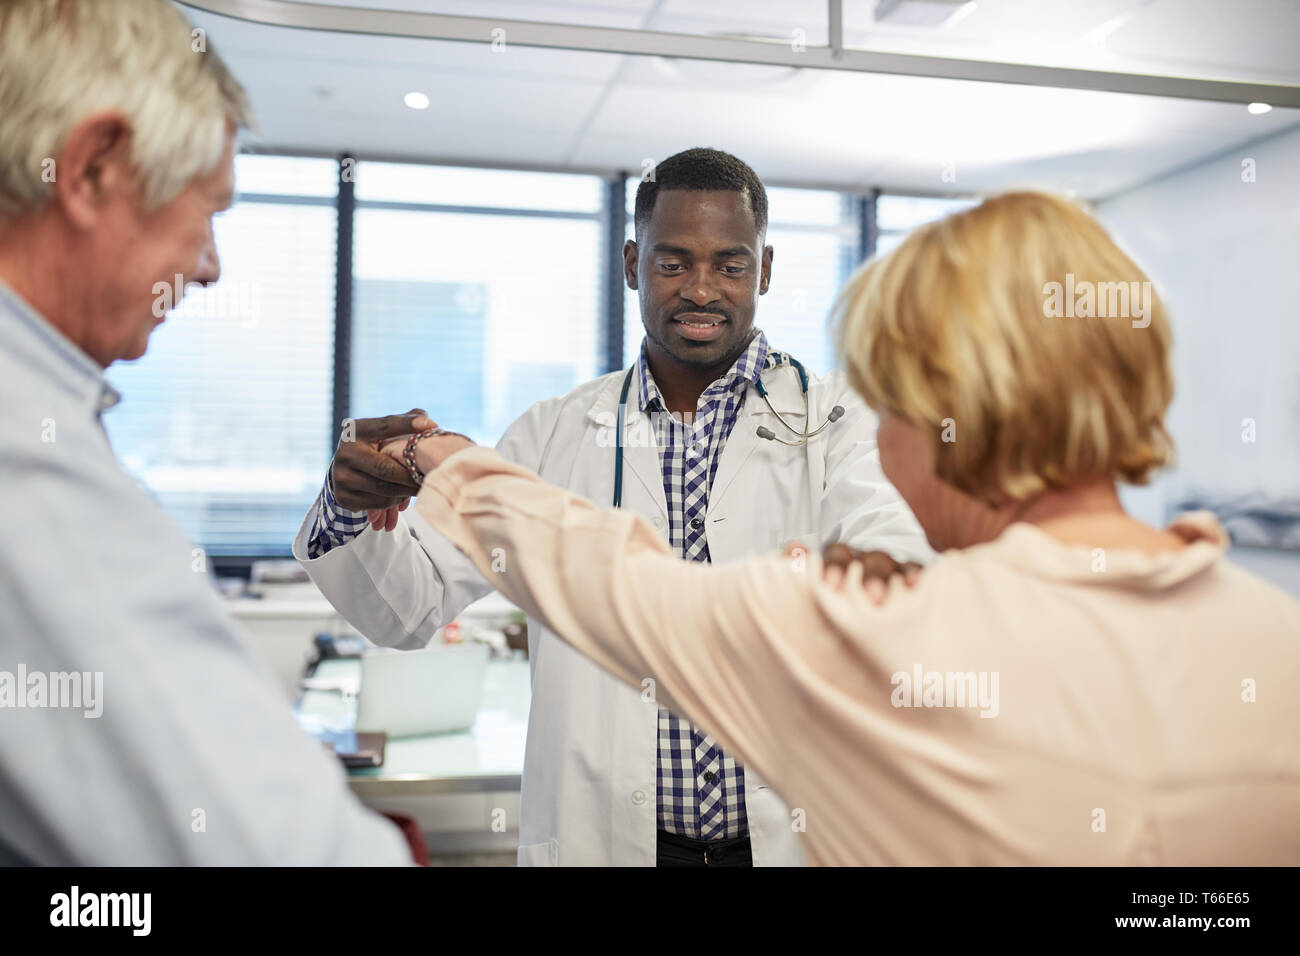 Male doctor examining senior patients shoulder in clinic examination room Stock Photo